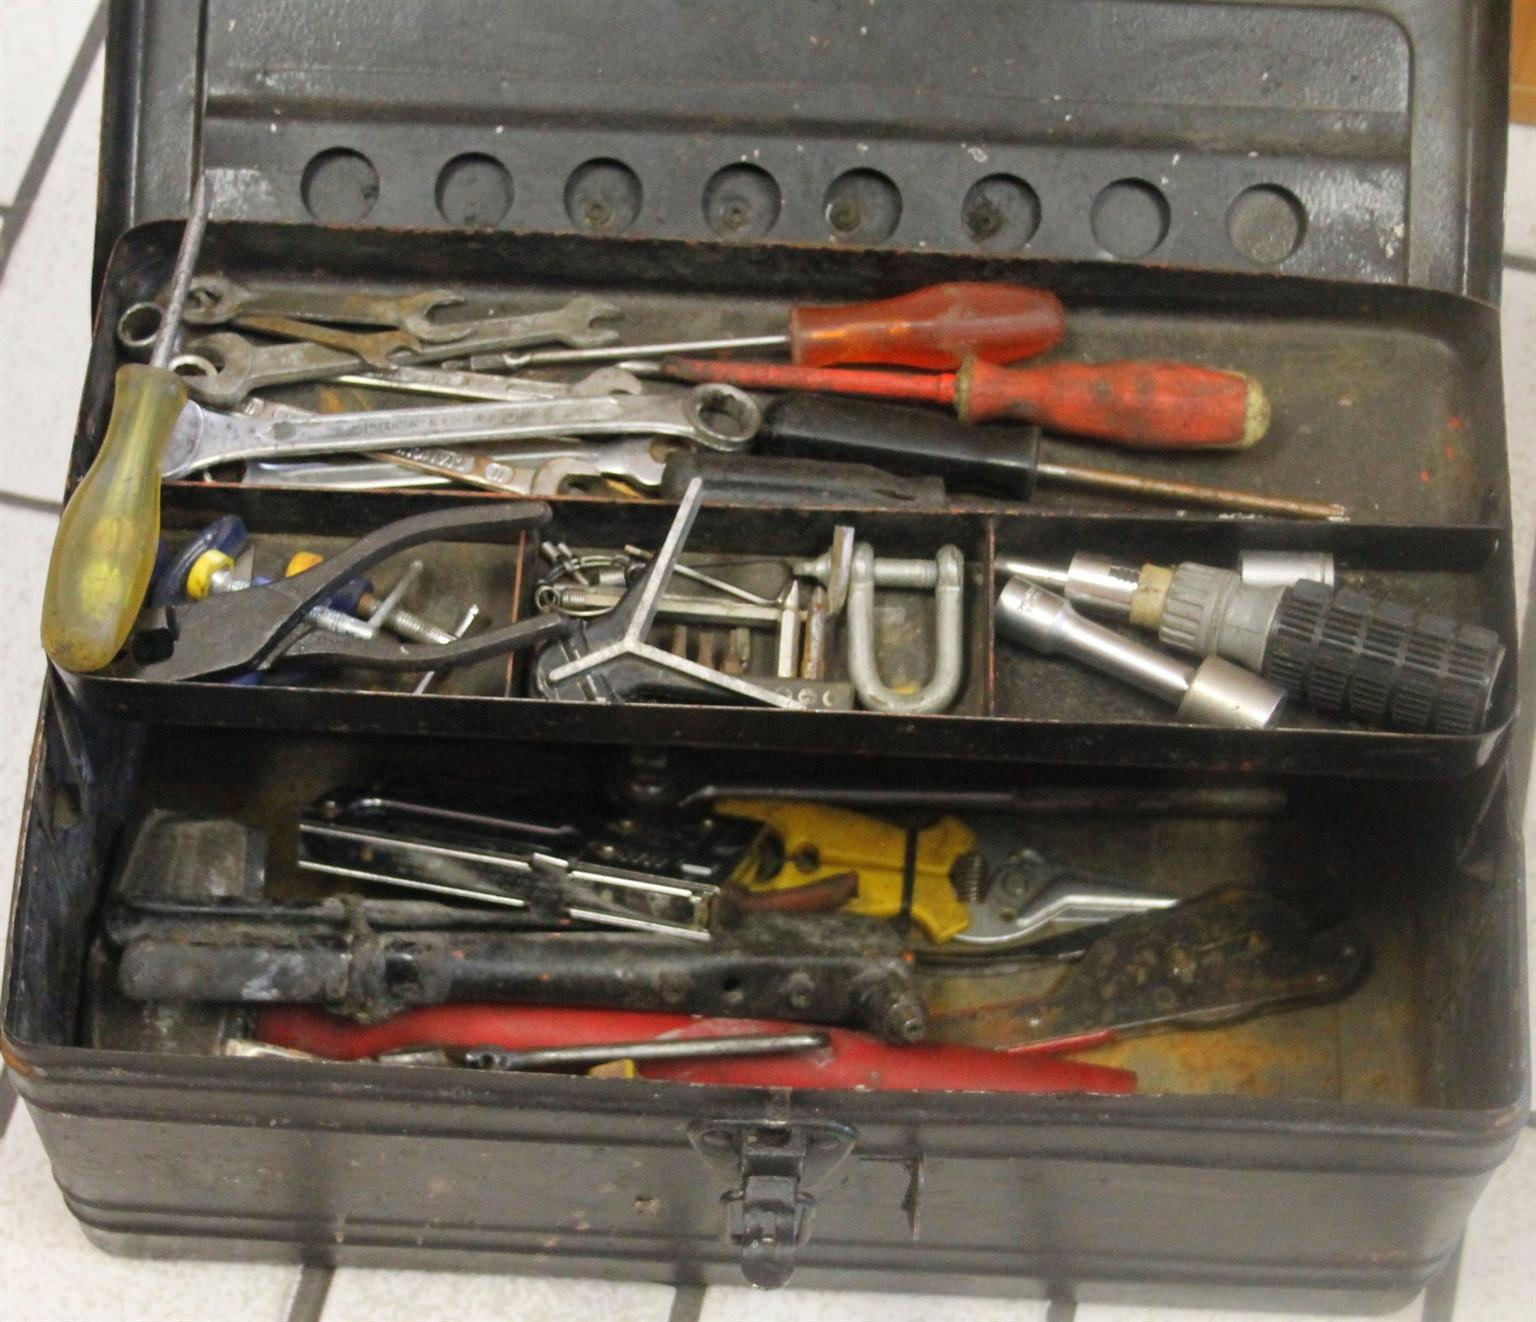 Loose tools in box S029207a #Rosettenvilepawnshop